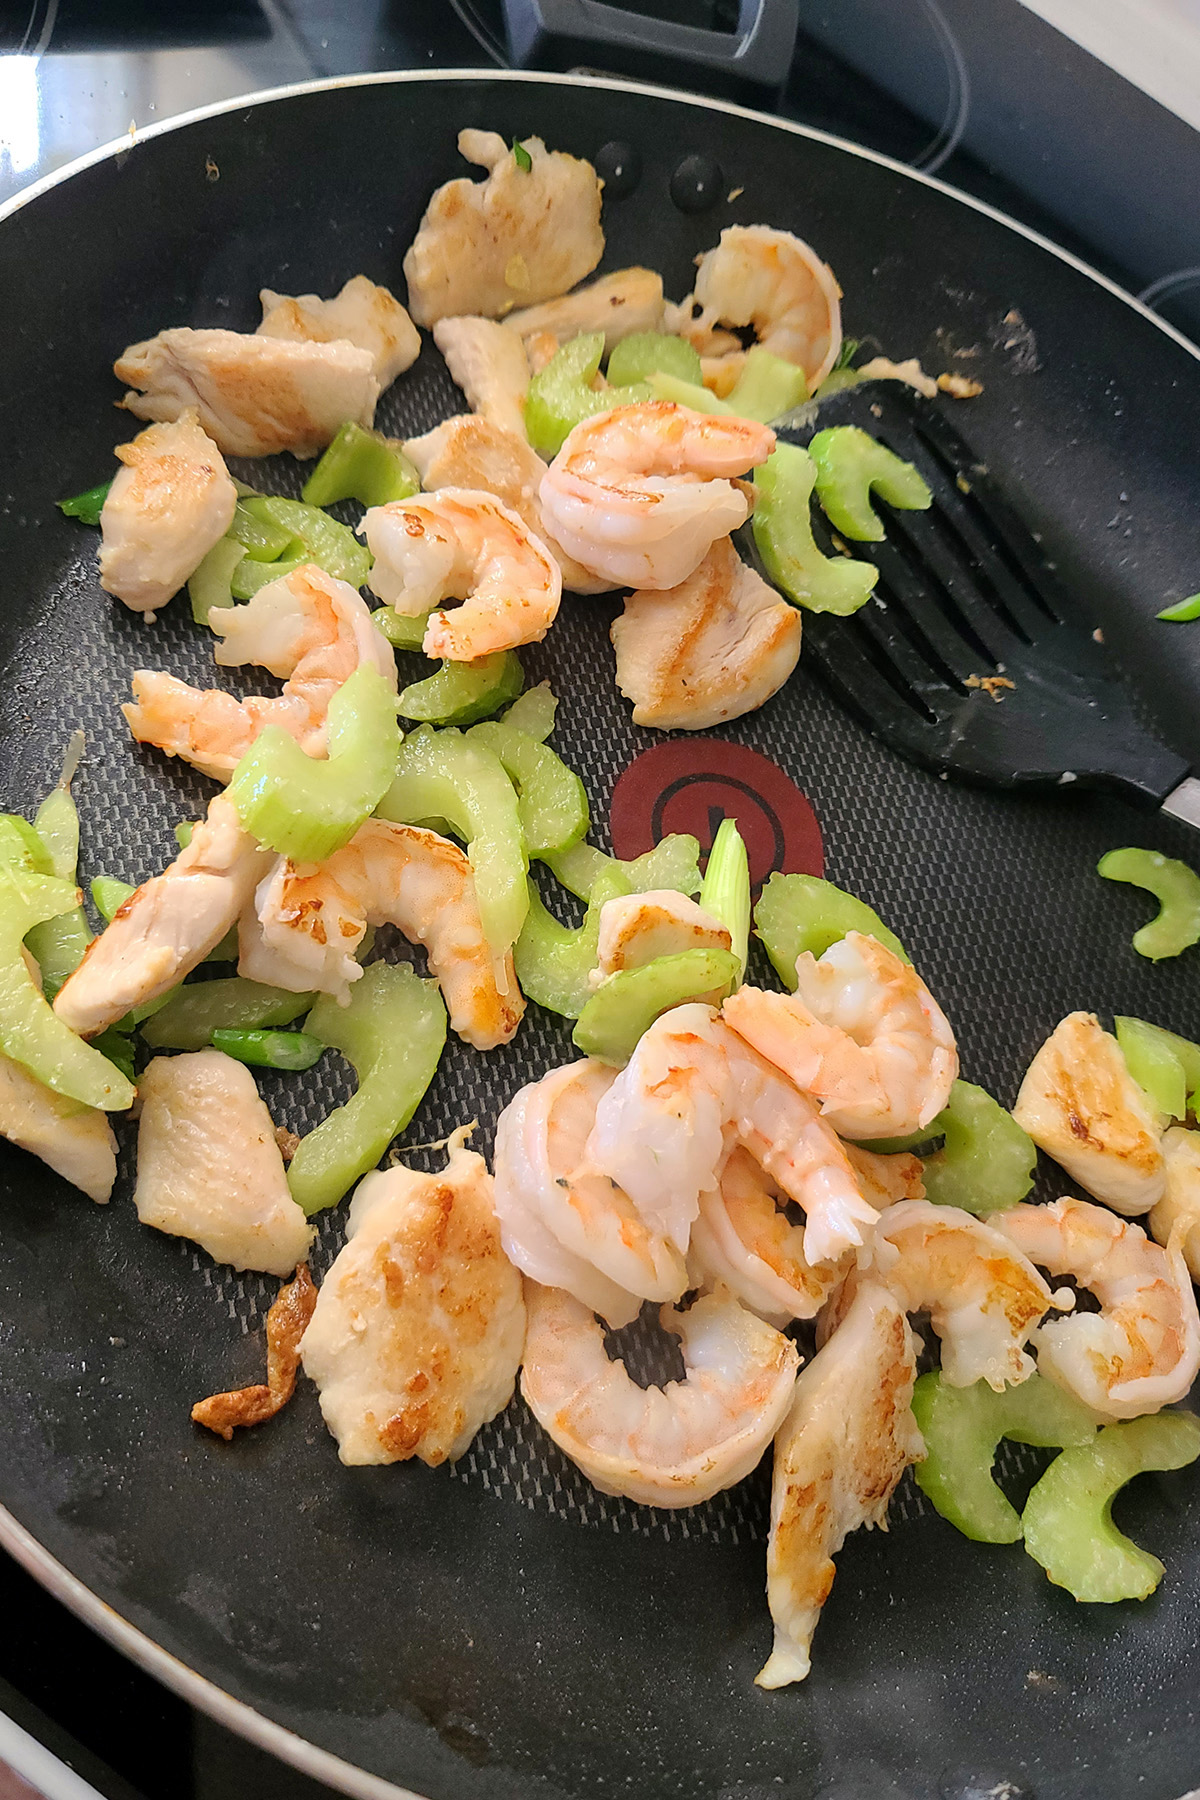 Chicken, shrimp, and celery cooking in a pan.